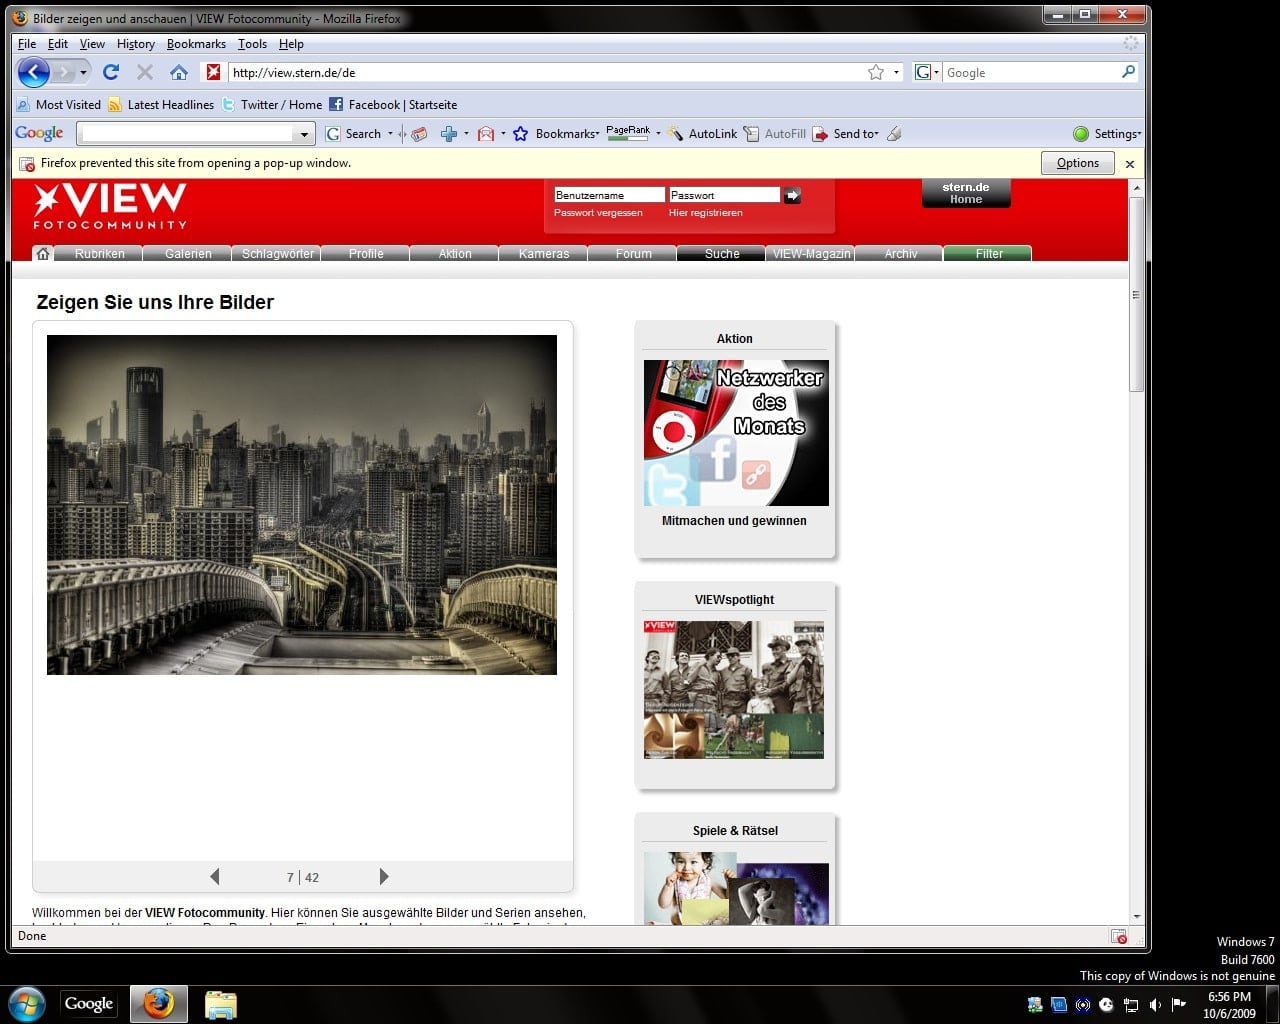 View Frontpage